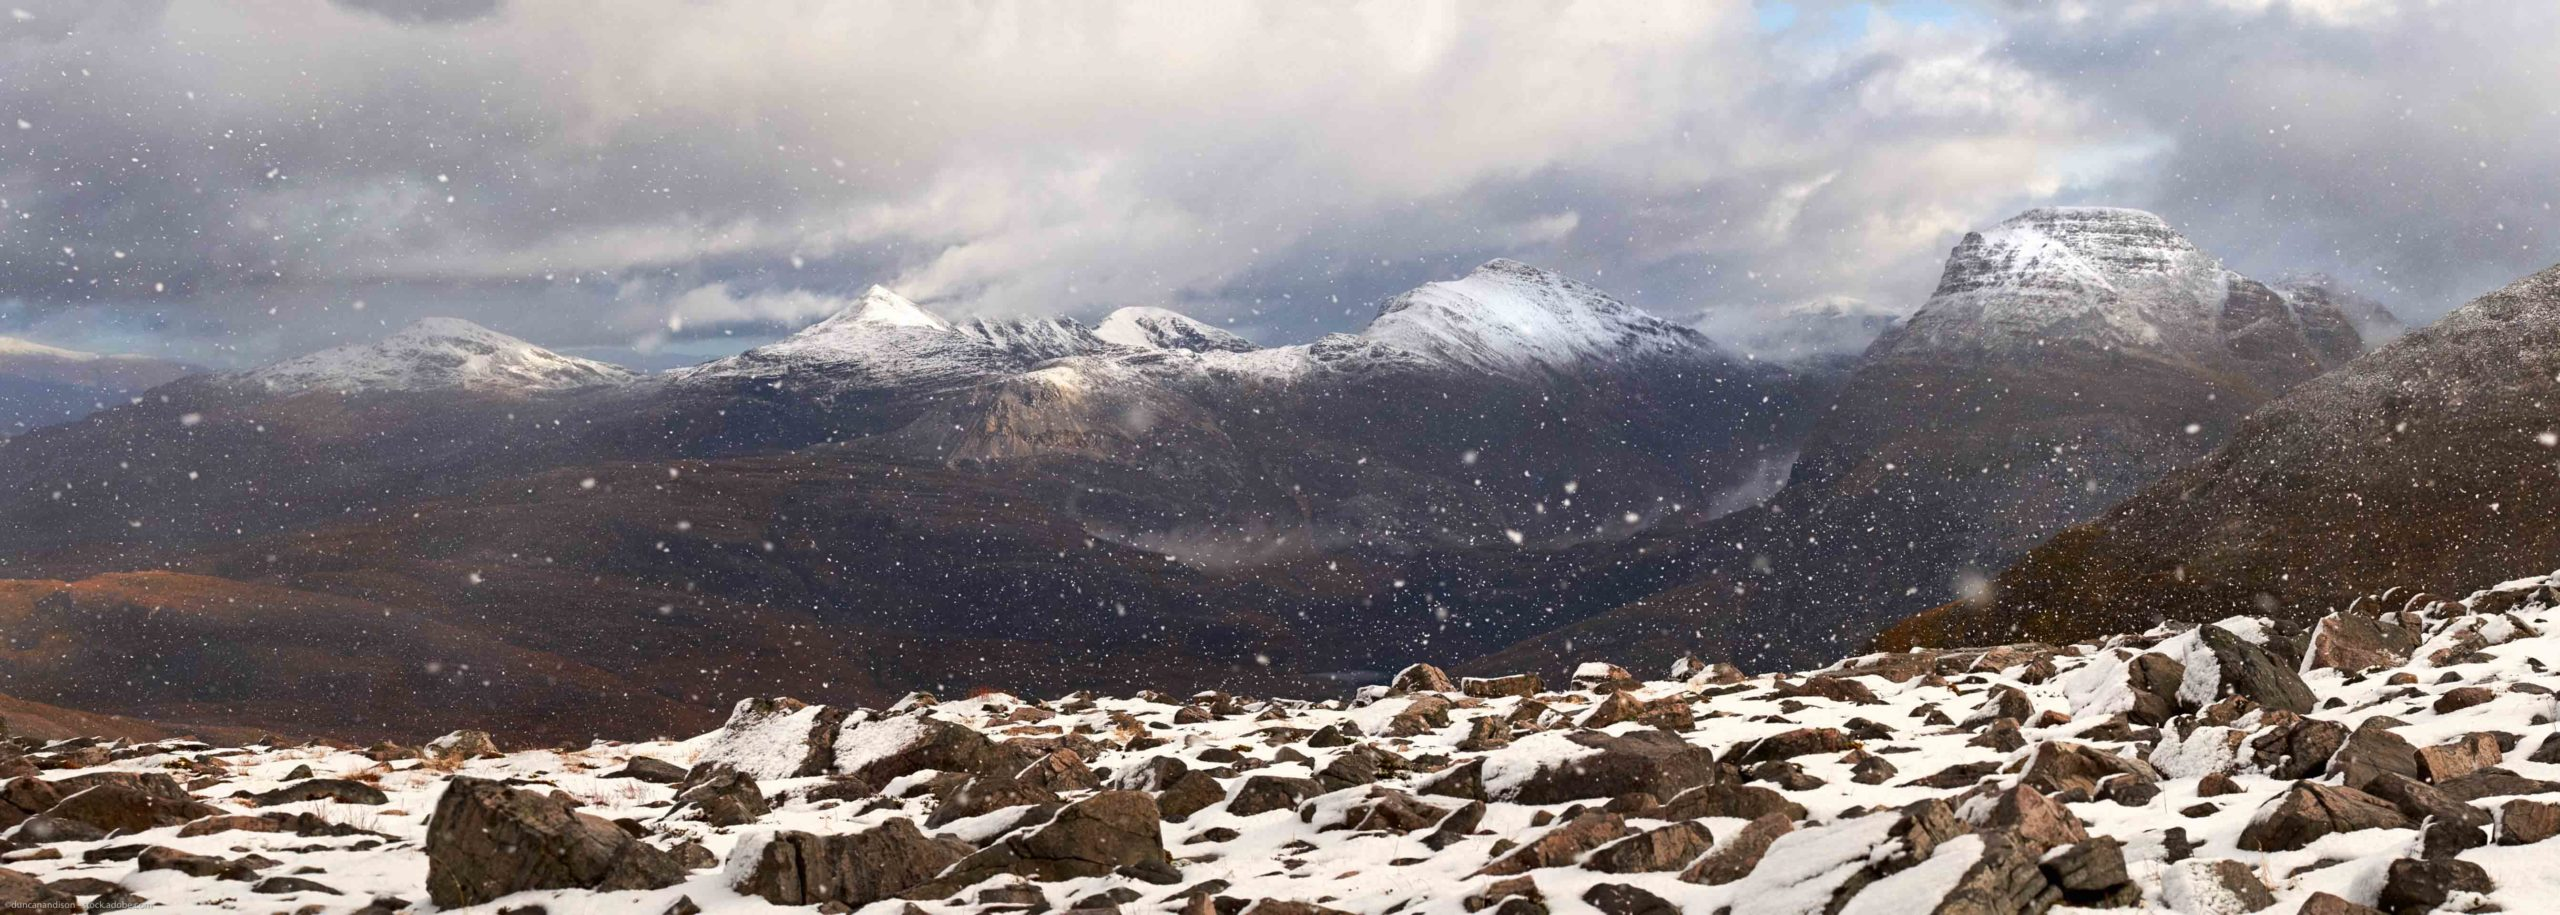 A panoramic view of Beinn Liath Mhor, Sgorr Ruad and Maol Chean Dearg in winter. Scottish Highlands